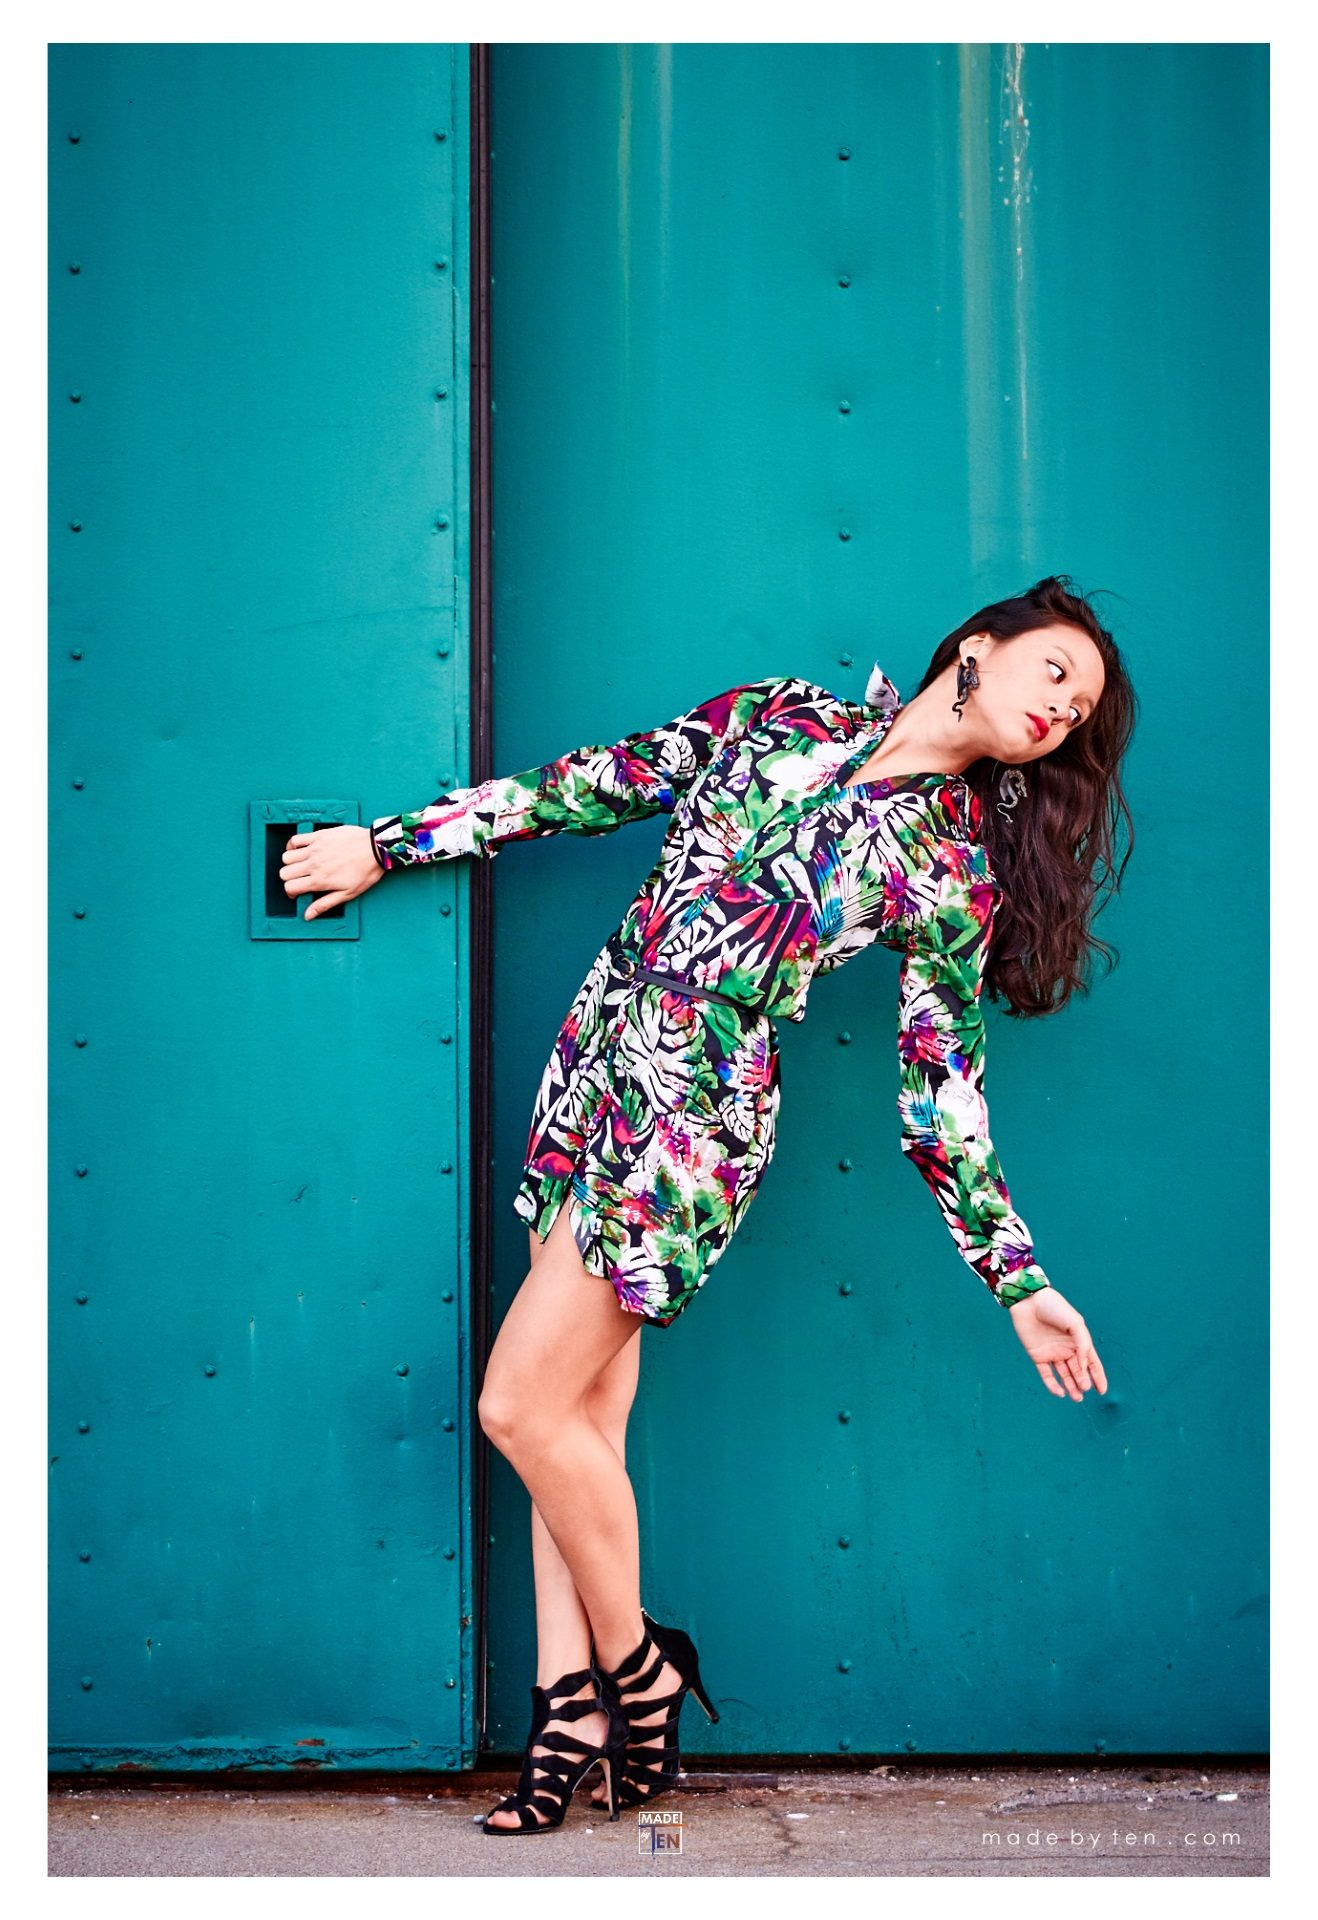 Green Door Fashion Editorial - GTA Women Lifestyle Photography